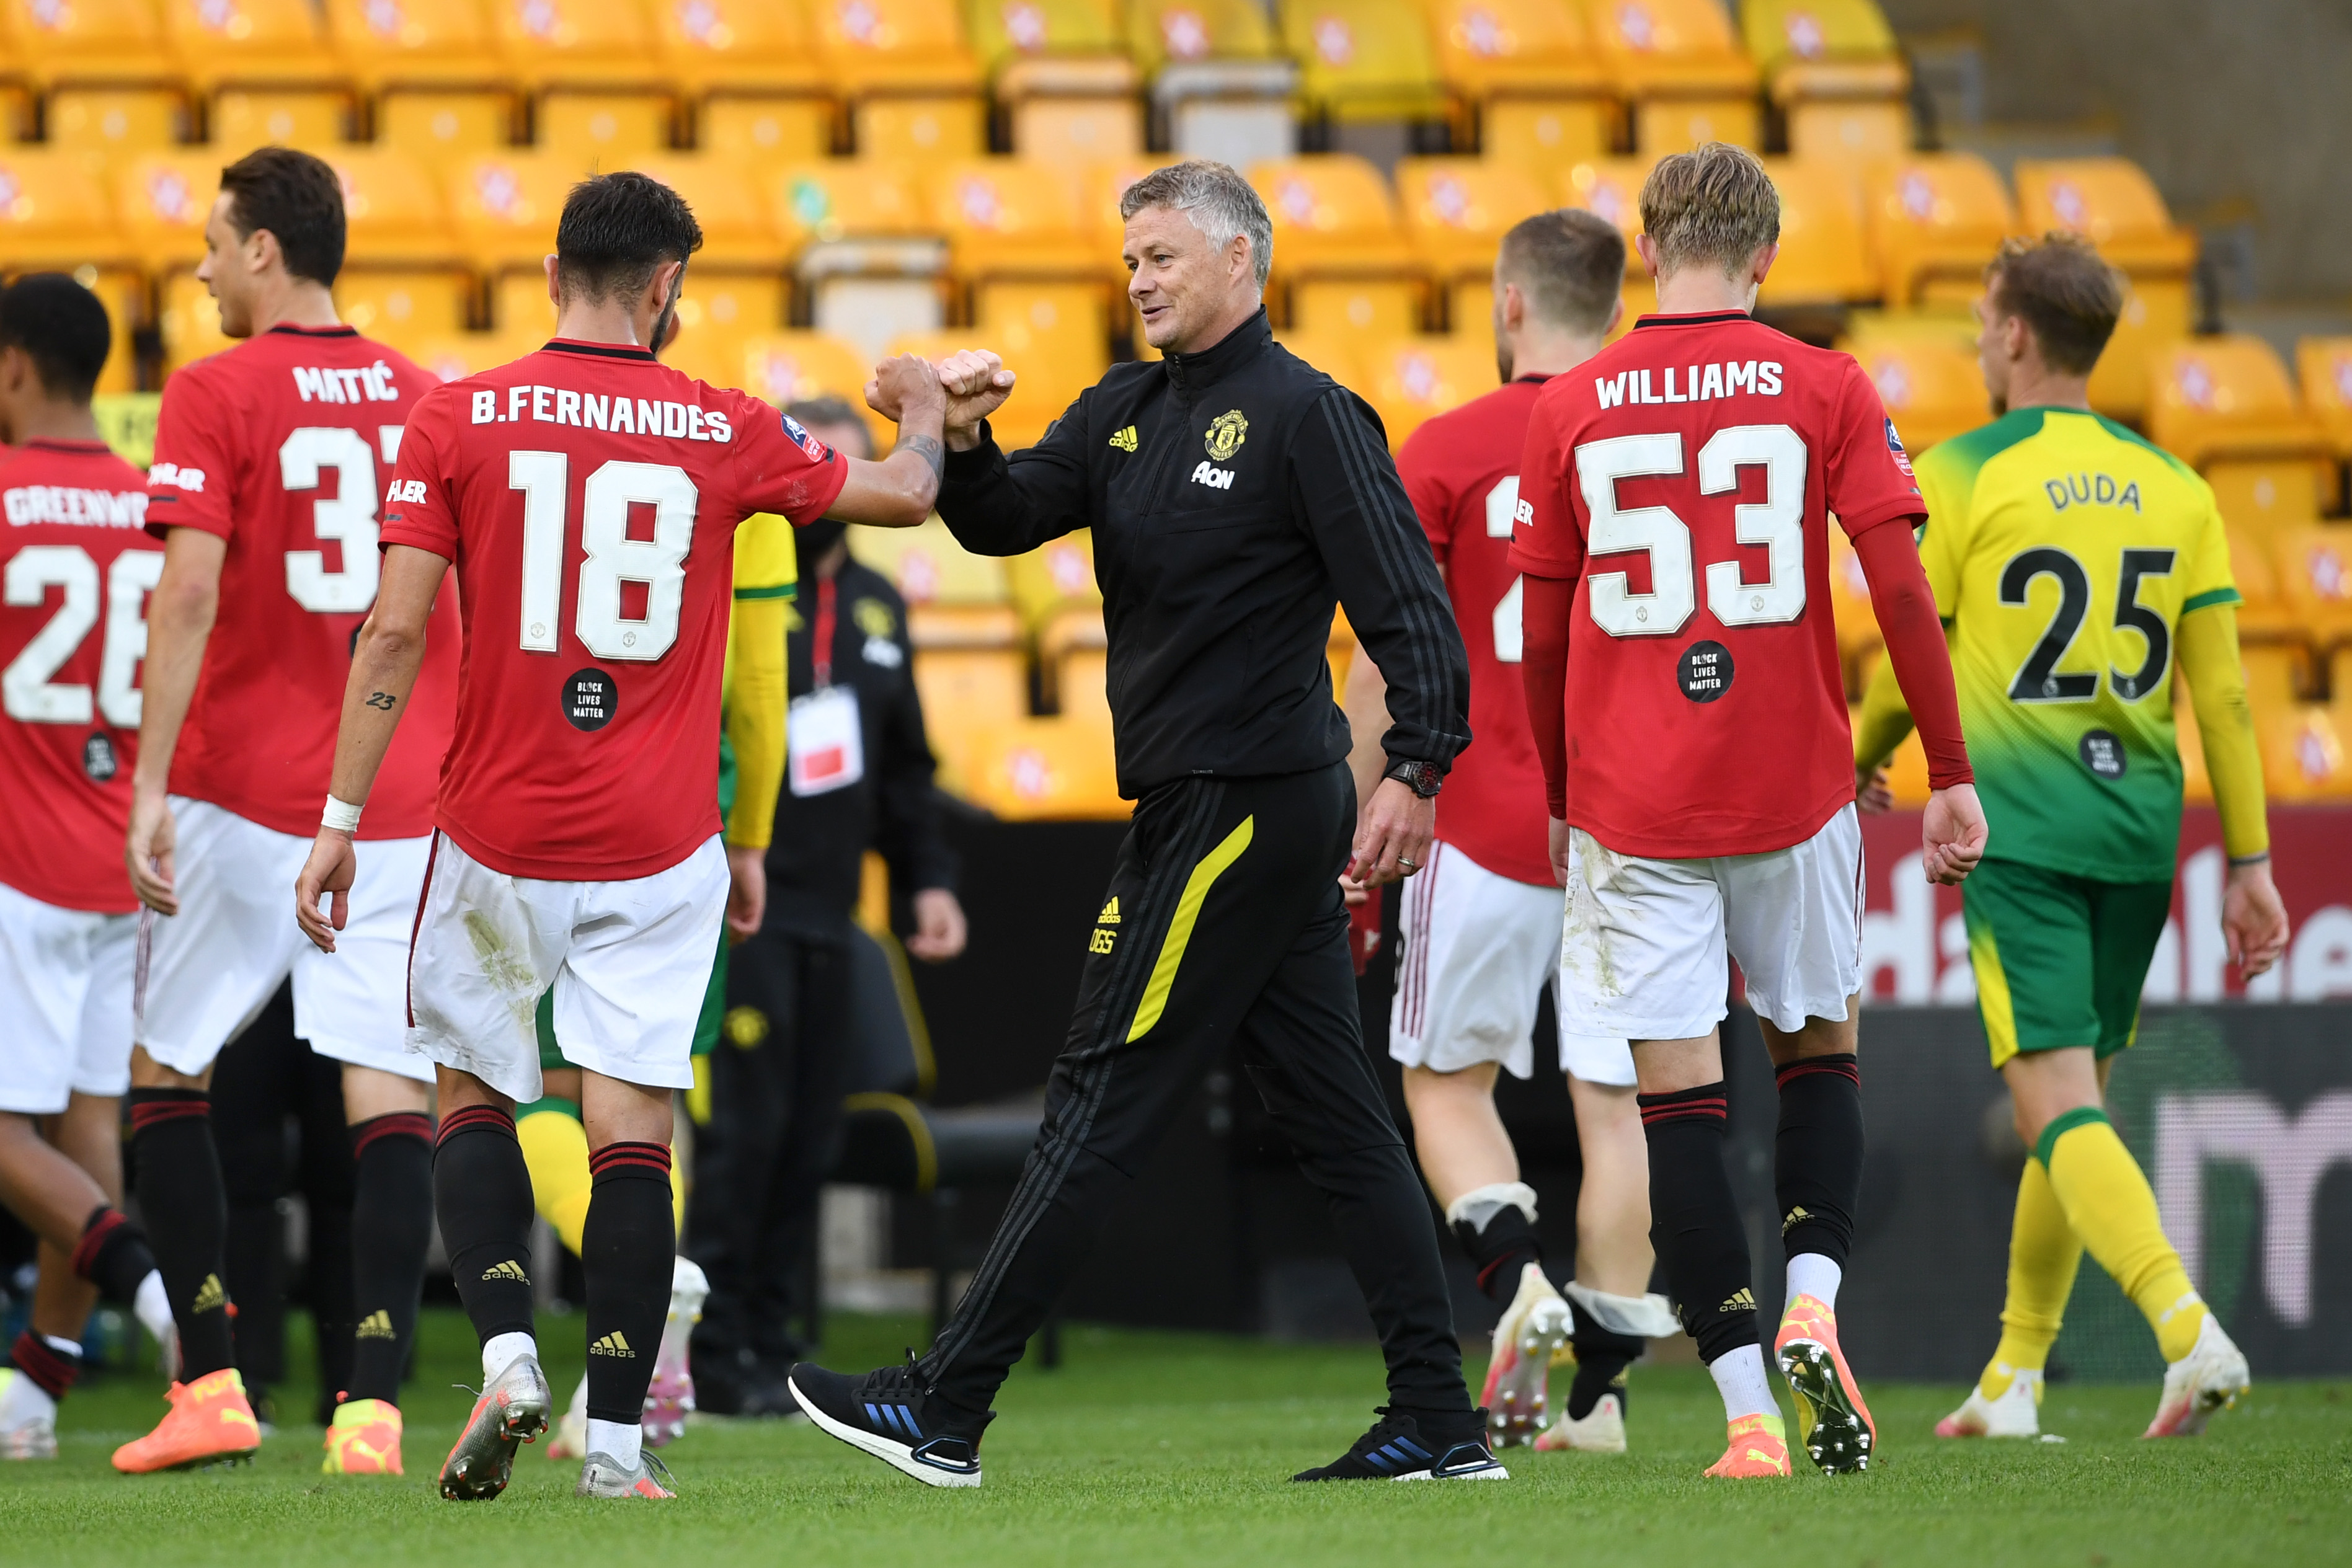 4-2-3-1 Manchester United Predicted Lineup Vs Bournemouth (Man United players with Ole Gunnar Solskjaer seen in the picture)